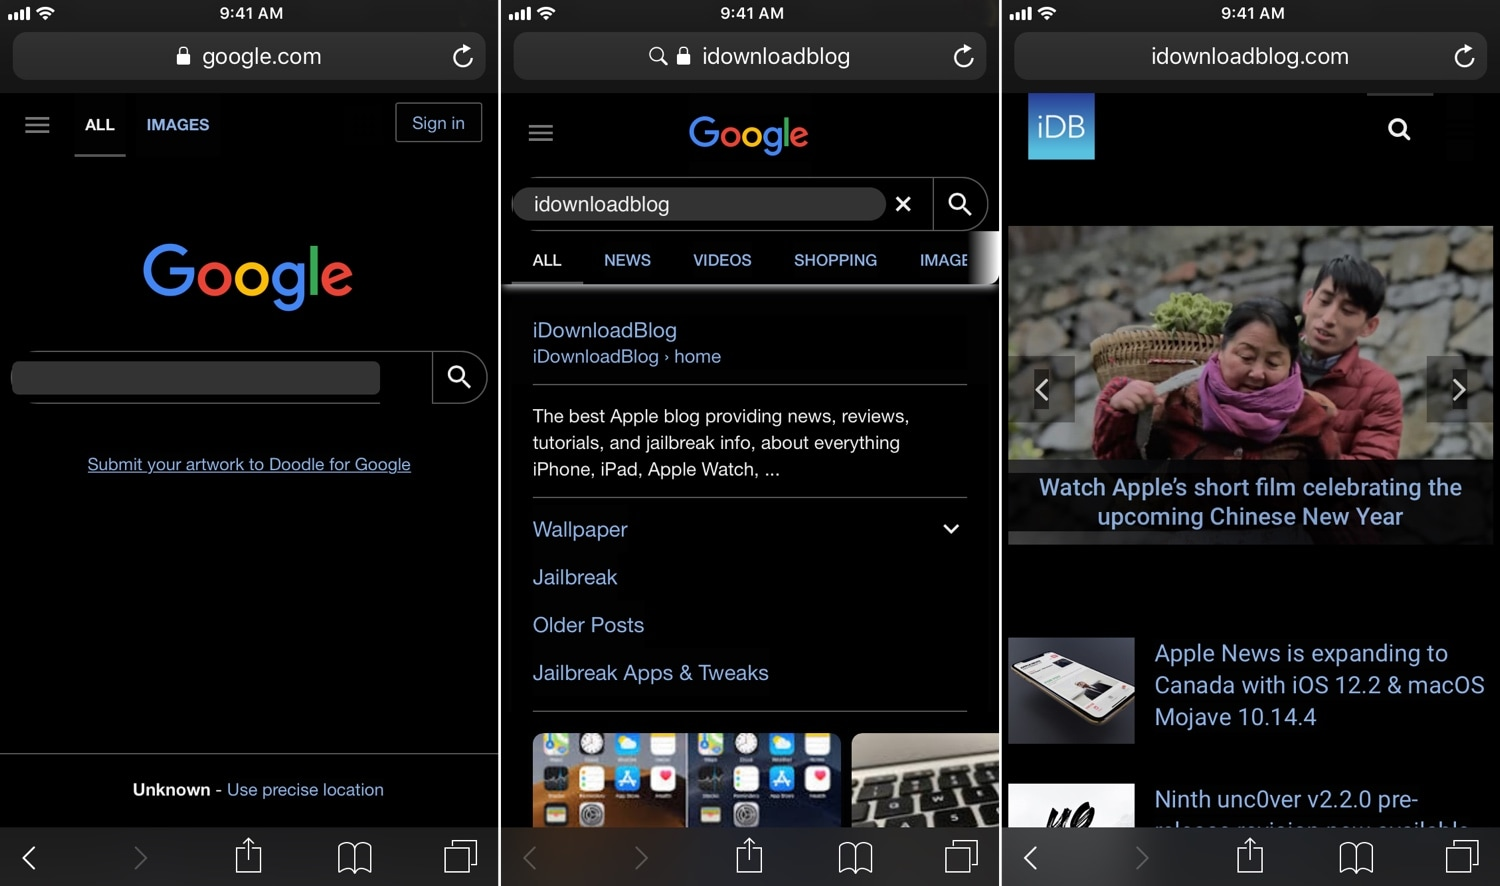 Umbreon: A customizable Dark Mode for web pages in iOS